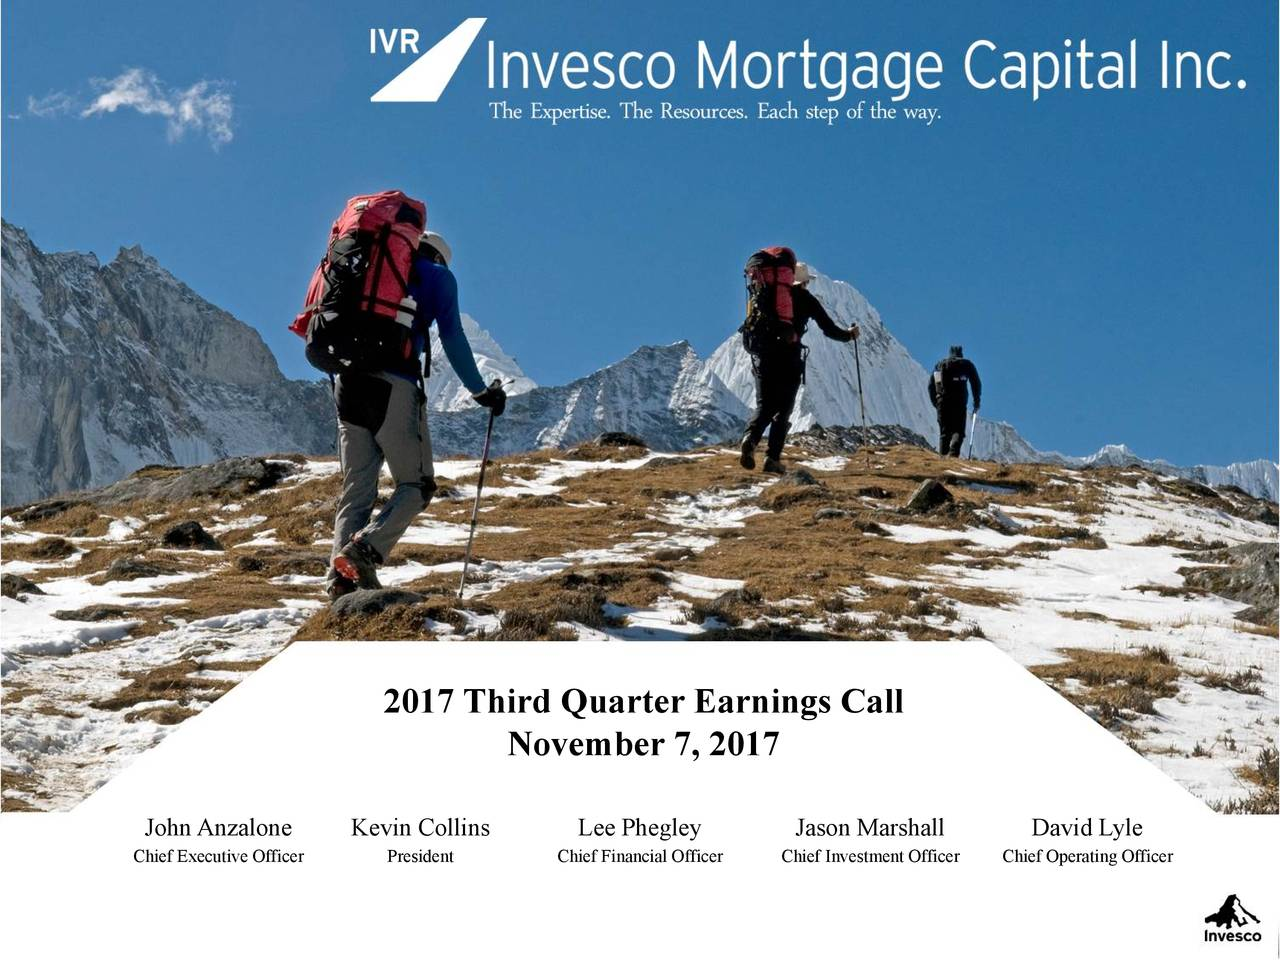 November 7, 2017 JohnAnzalone Kevin Collins Lee Phegley Jason Marshall David Lyle Chief Executive Officer President Chief Financial OfficeChief Investment OfficChief Operating Officer